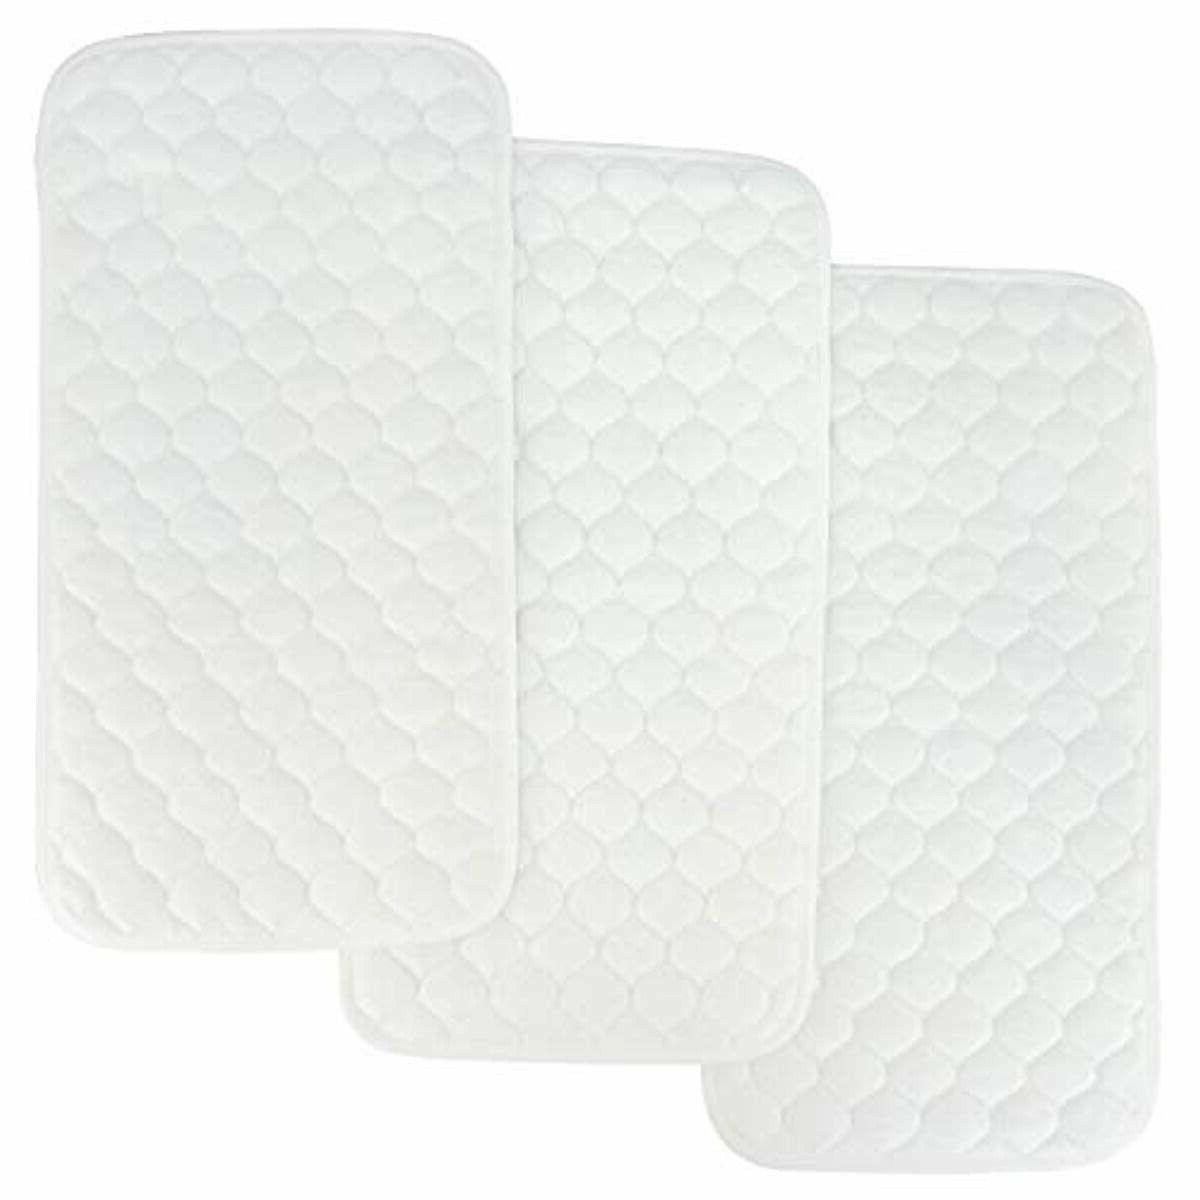 Bamboo Waterproof Pad for 3